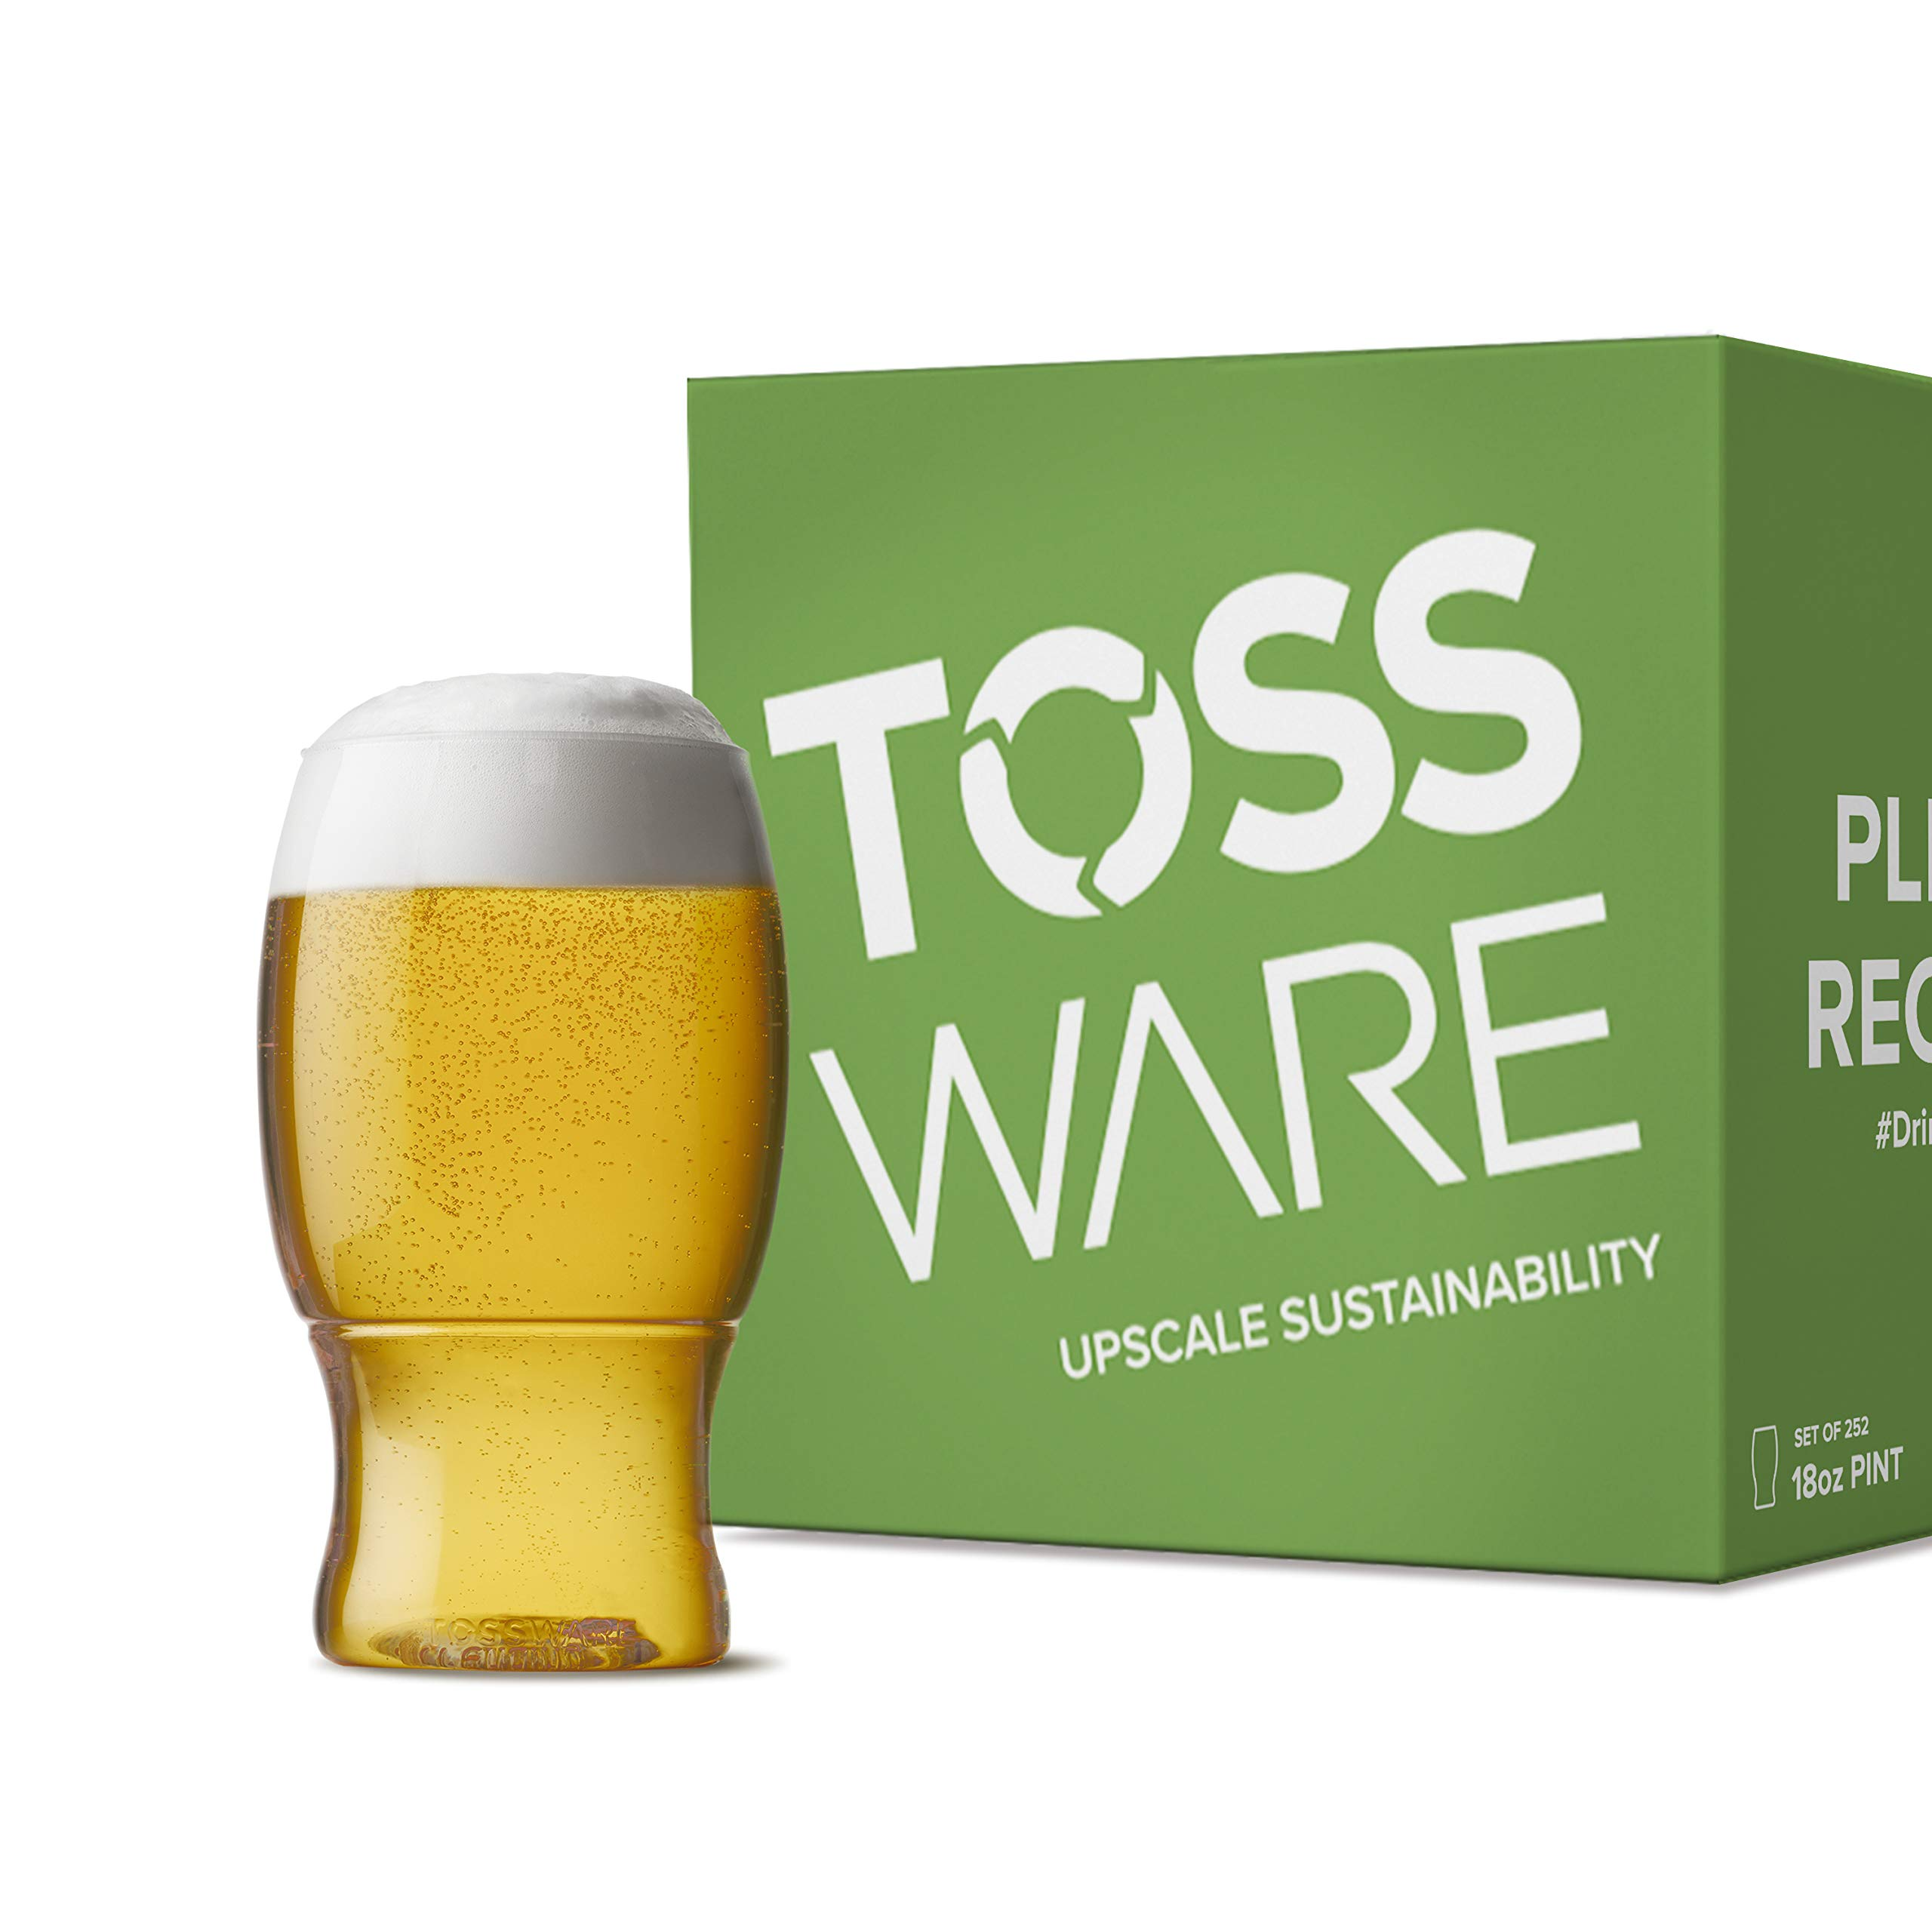 TOSSWARE 18oz Pint Recyclable Plastic Cup-Set of 252-stemless, shatterproof and BPA-Free Beer Glasses, clear